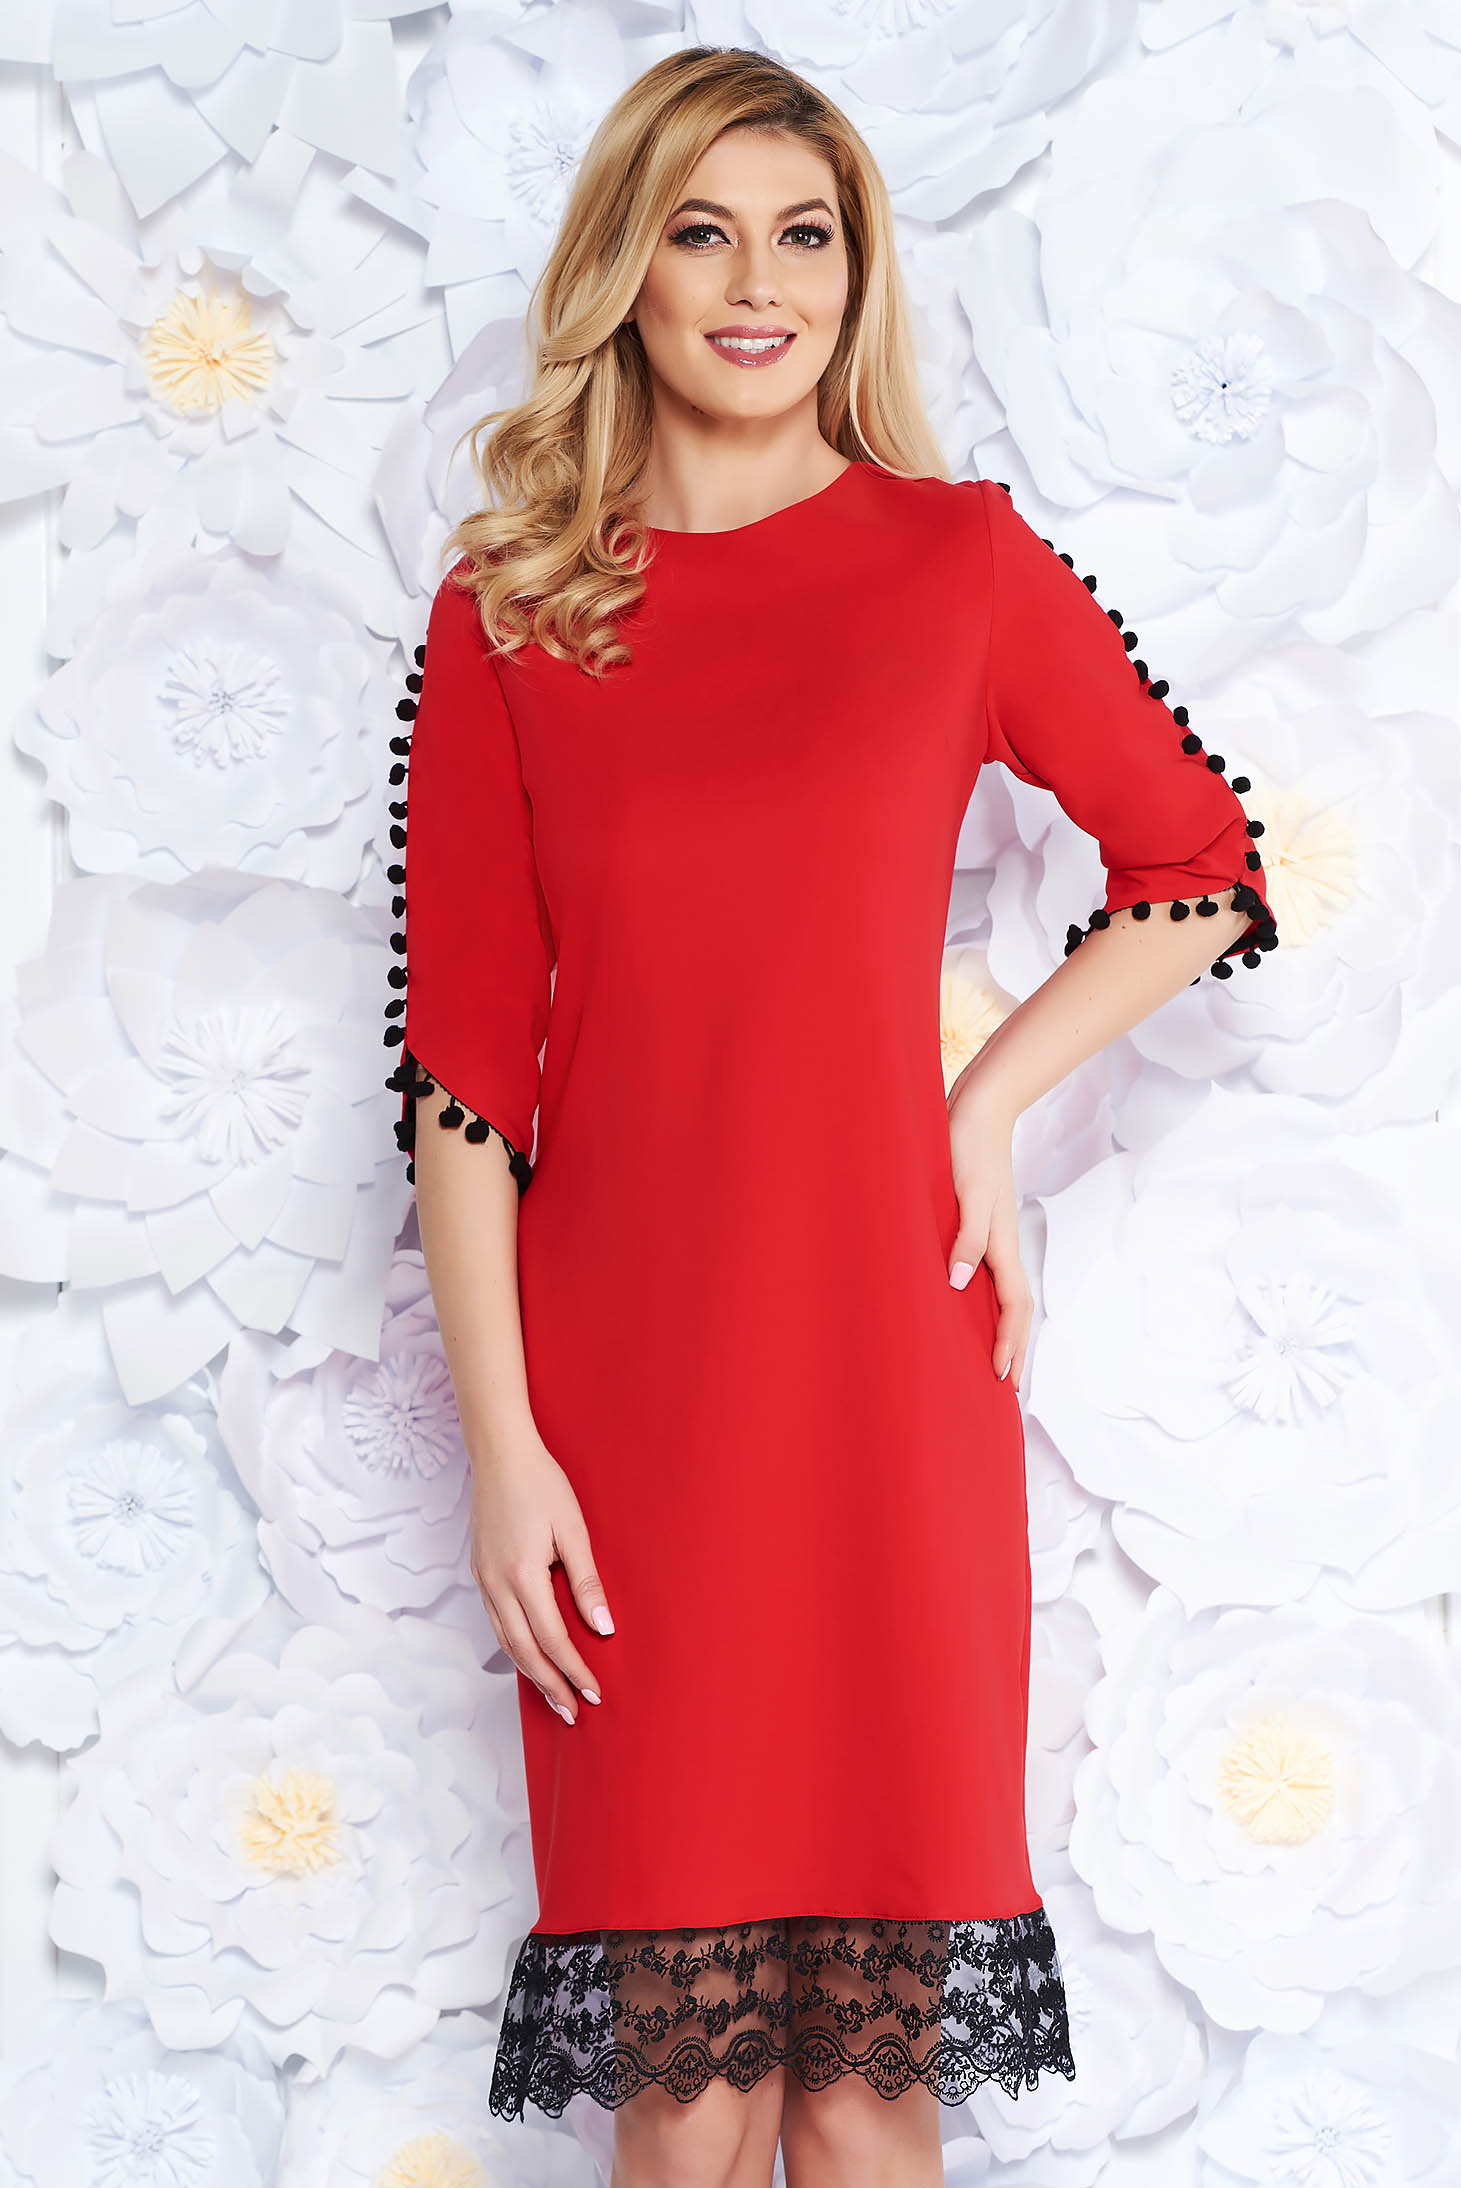 Red elegant flared dress slightly elastic fabric with lace details with tassels